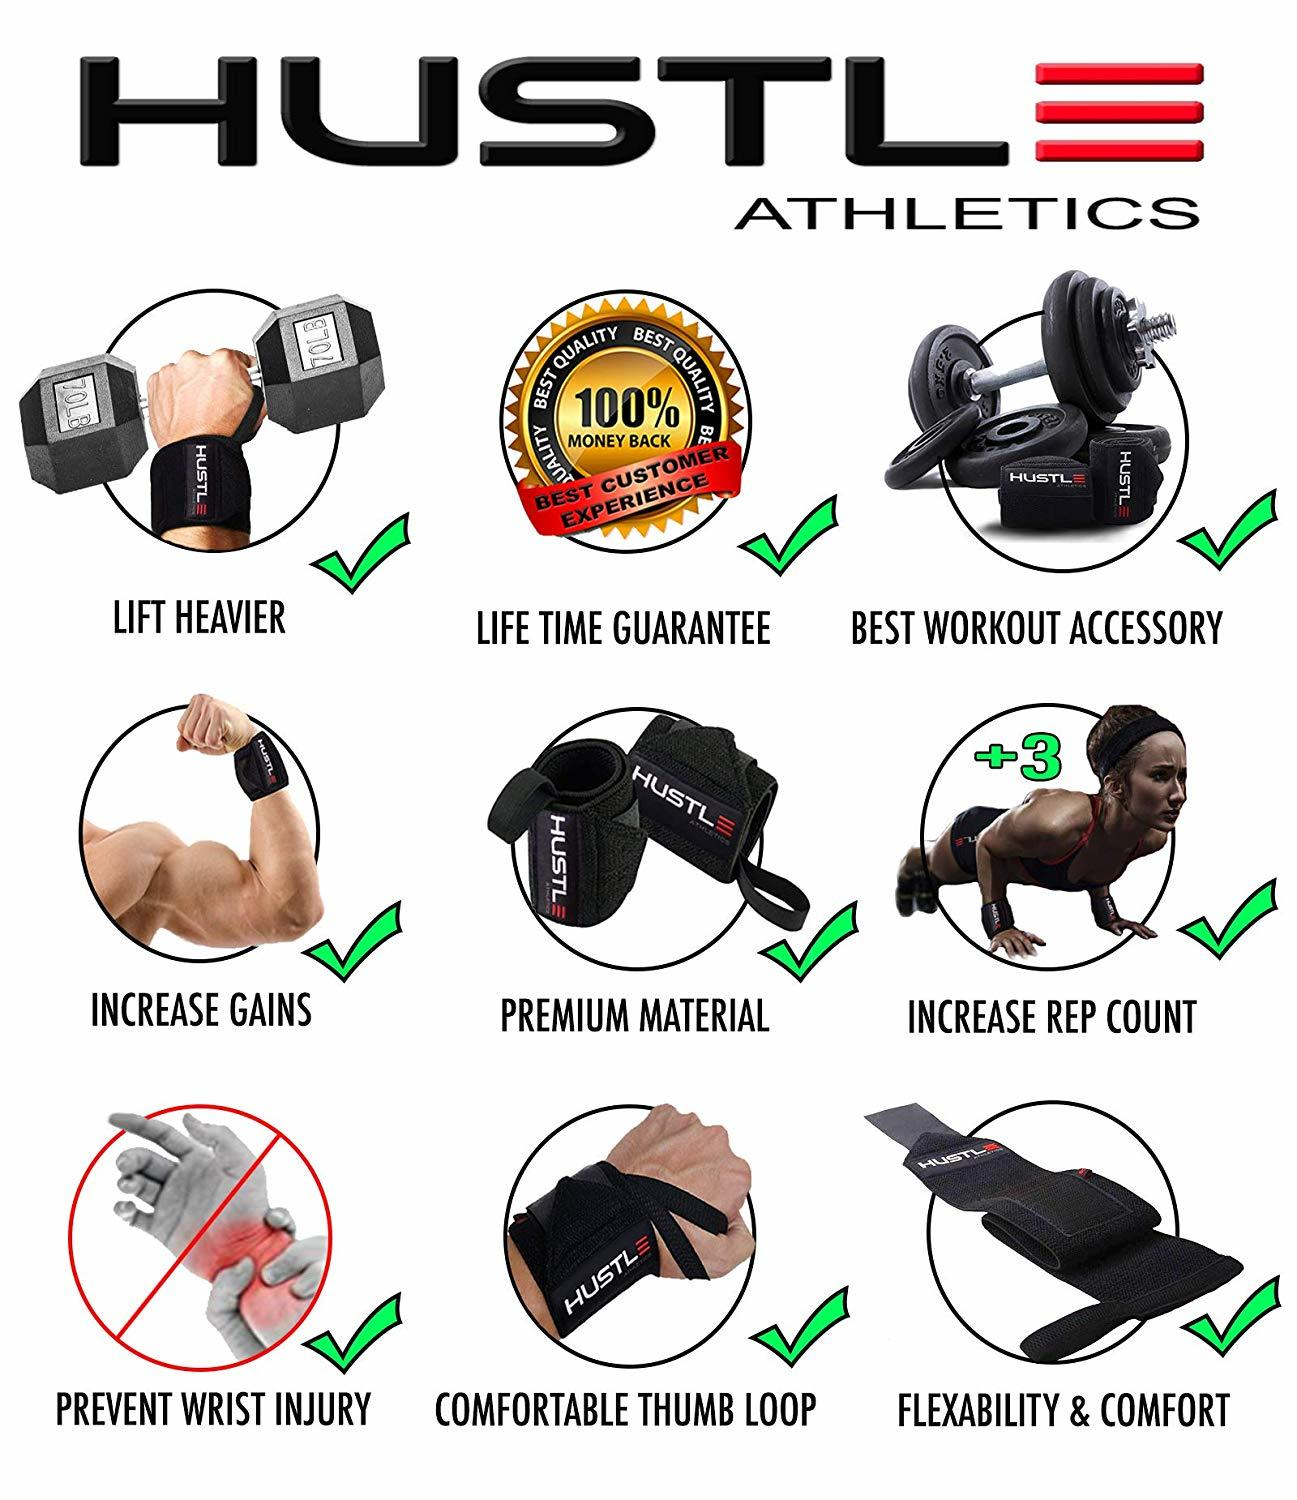 Hustle Athletics Wrist Wraps - Best Support For Weightlifting Bodybuilding & Crossfit - Brace Your Wrists To Train Harder & Reduce Muscle Strain - Comfortable Workout Straps For Men & Women Review Amazon